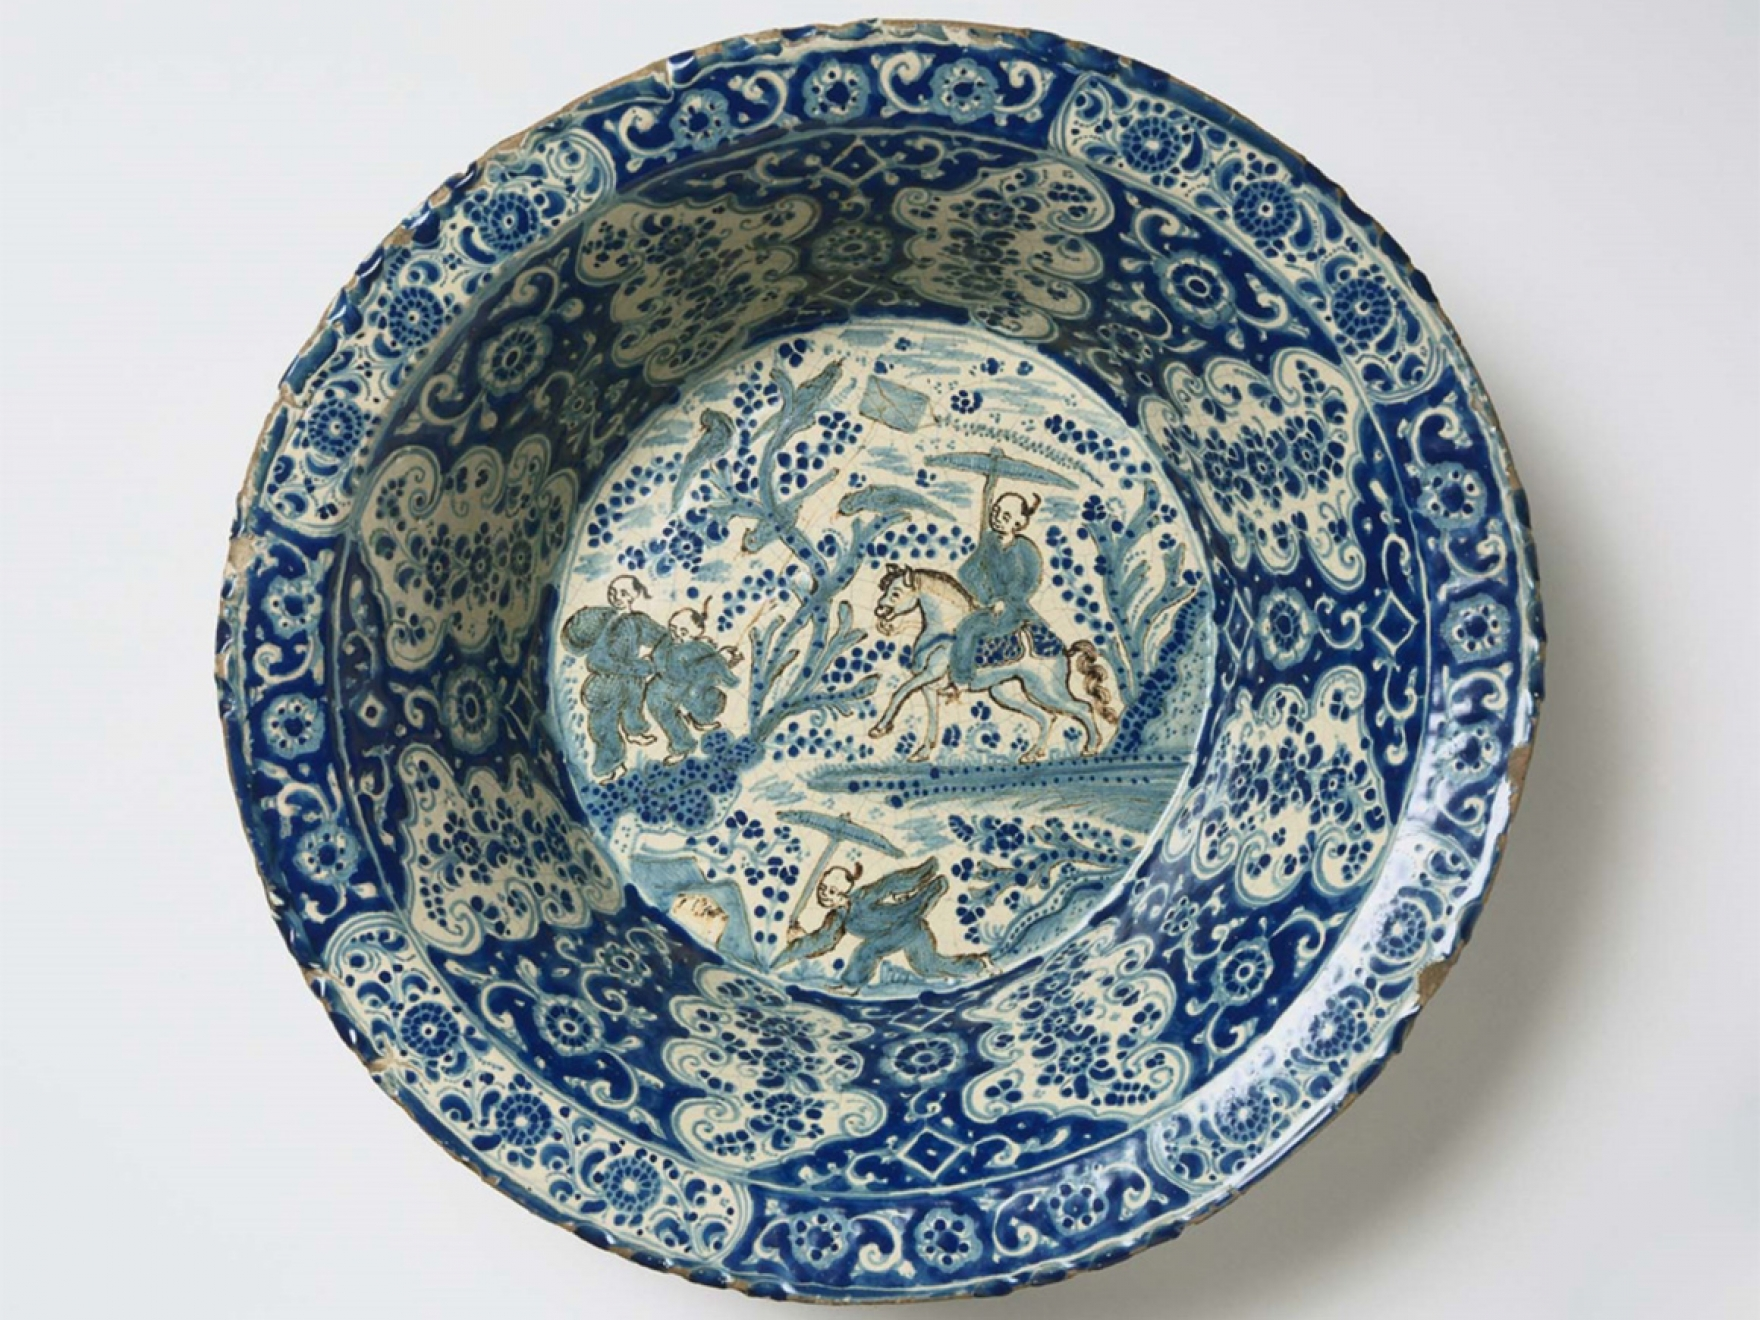 Diego Salvador Carreto, Basin with Landscape in Chinese Style, late 17th century